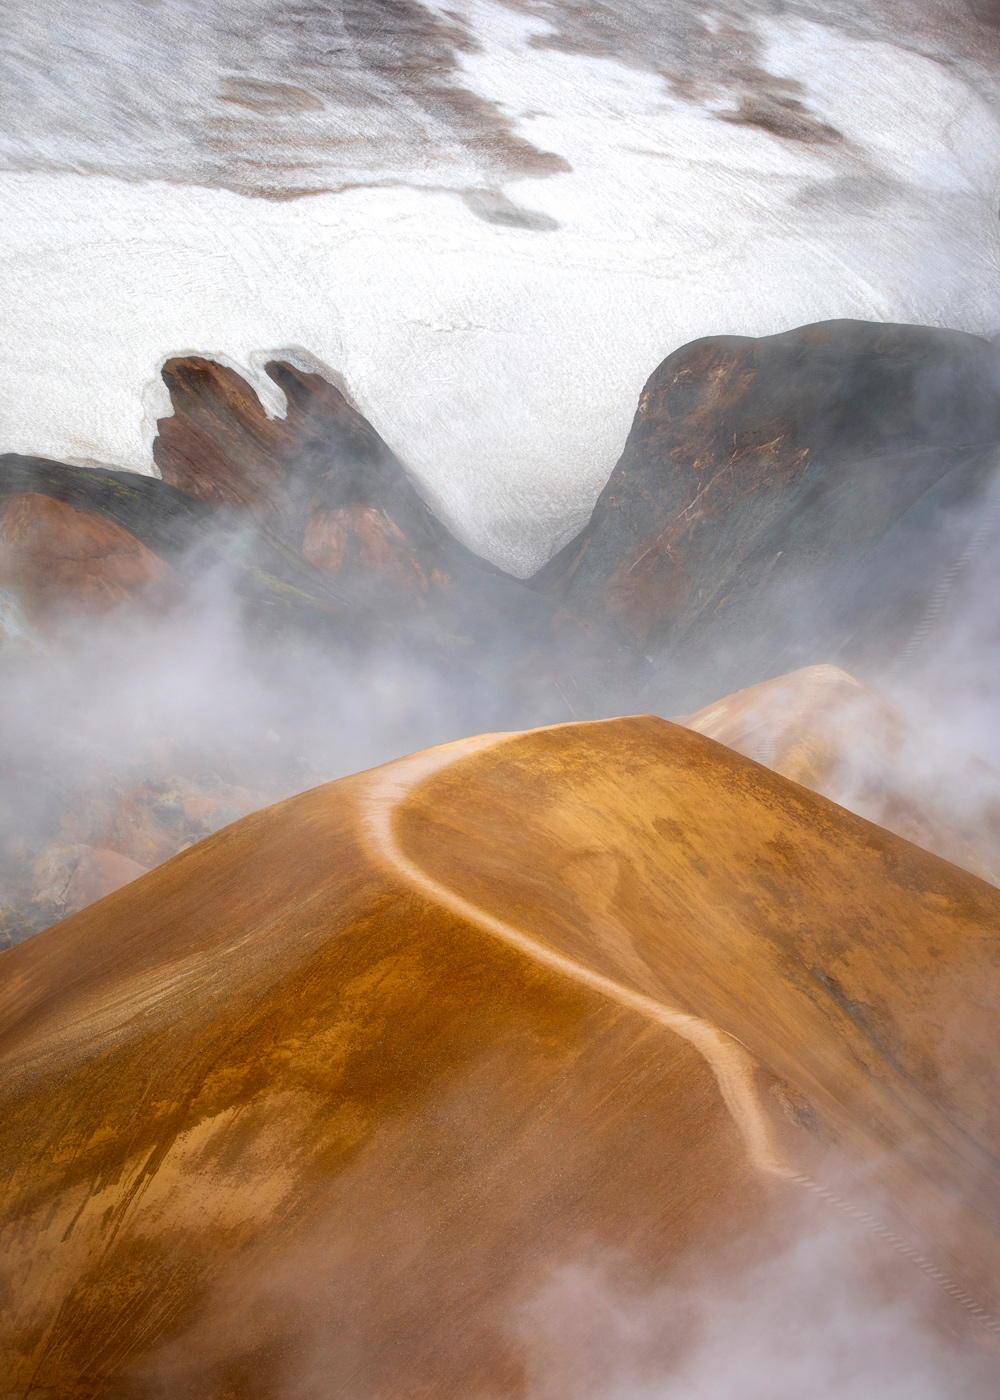 Landscape Photographer of the Year (based on a folio submission of at least 4 images) is Oleg Ershov from Russia